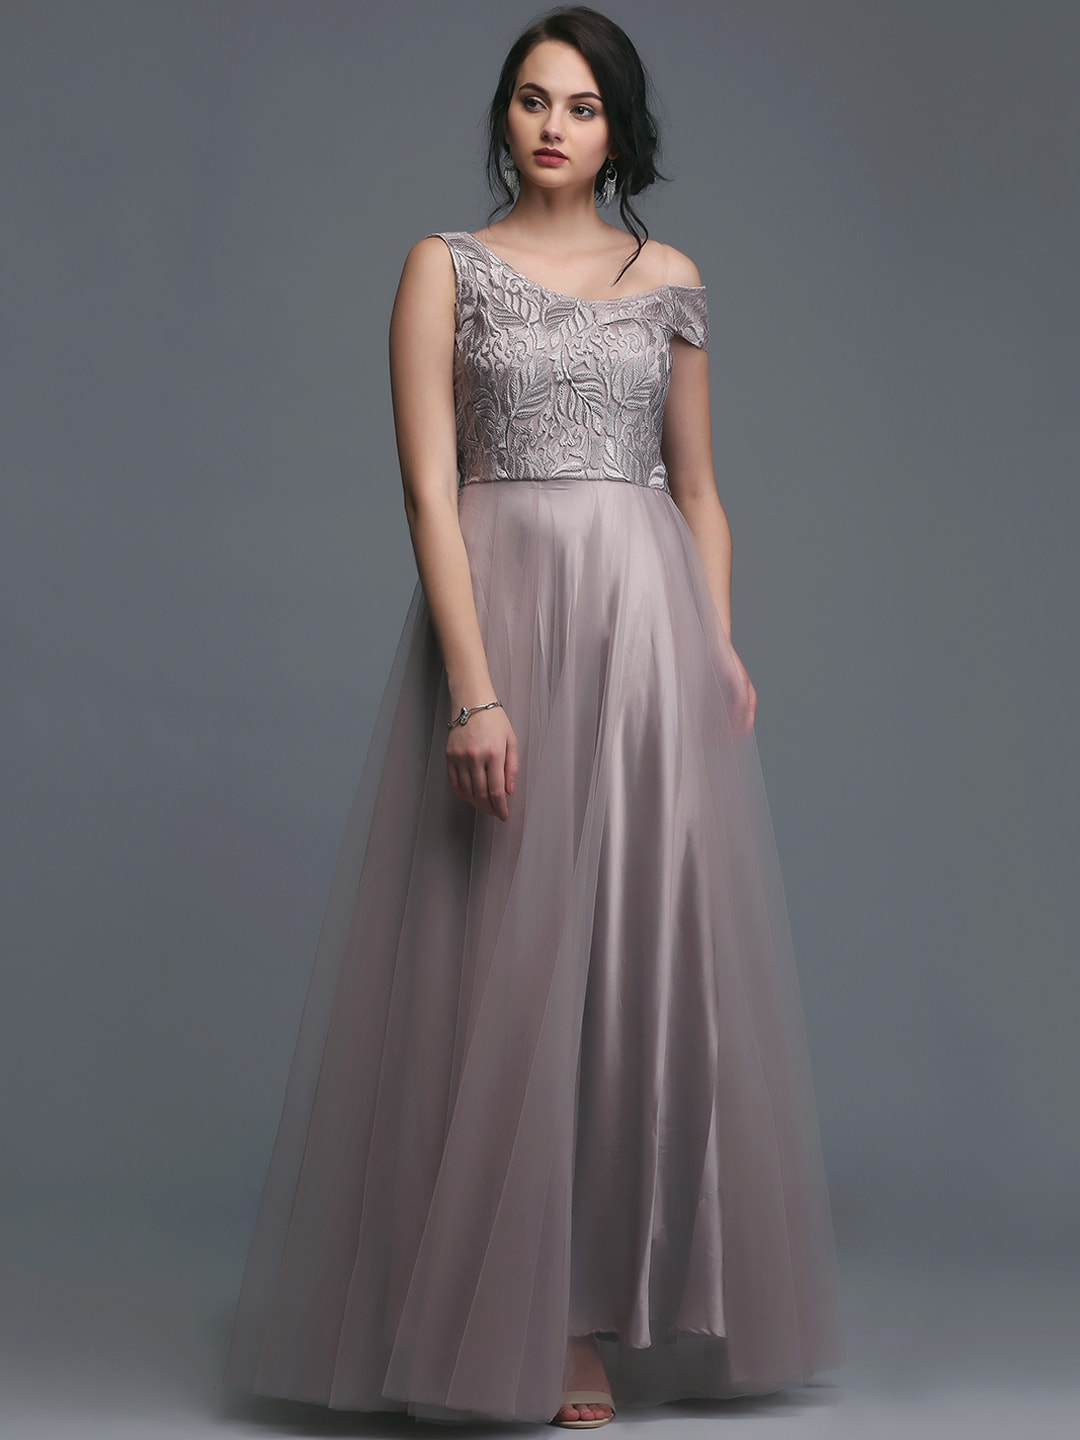 48b81e767aa7 Gowns - Shop for Gown Online at Best Price